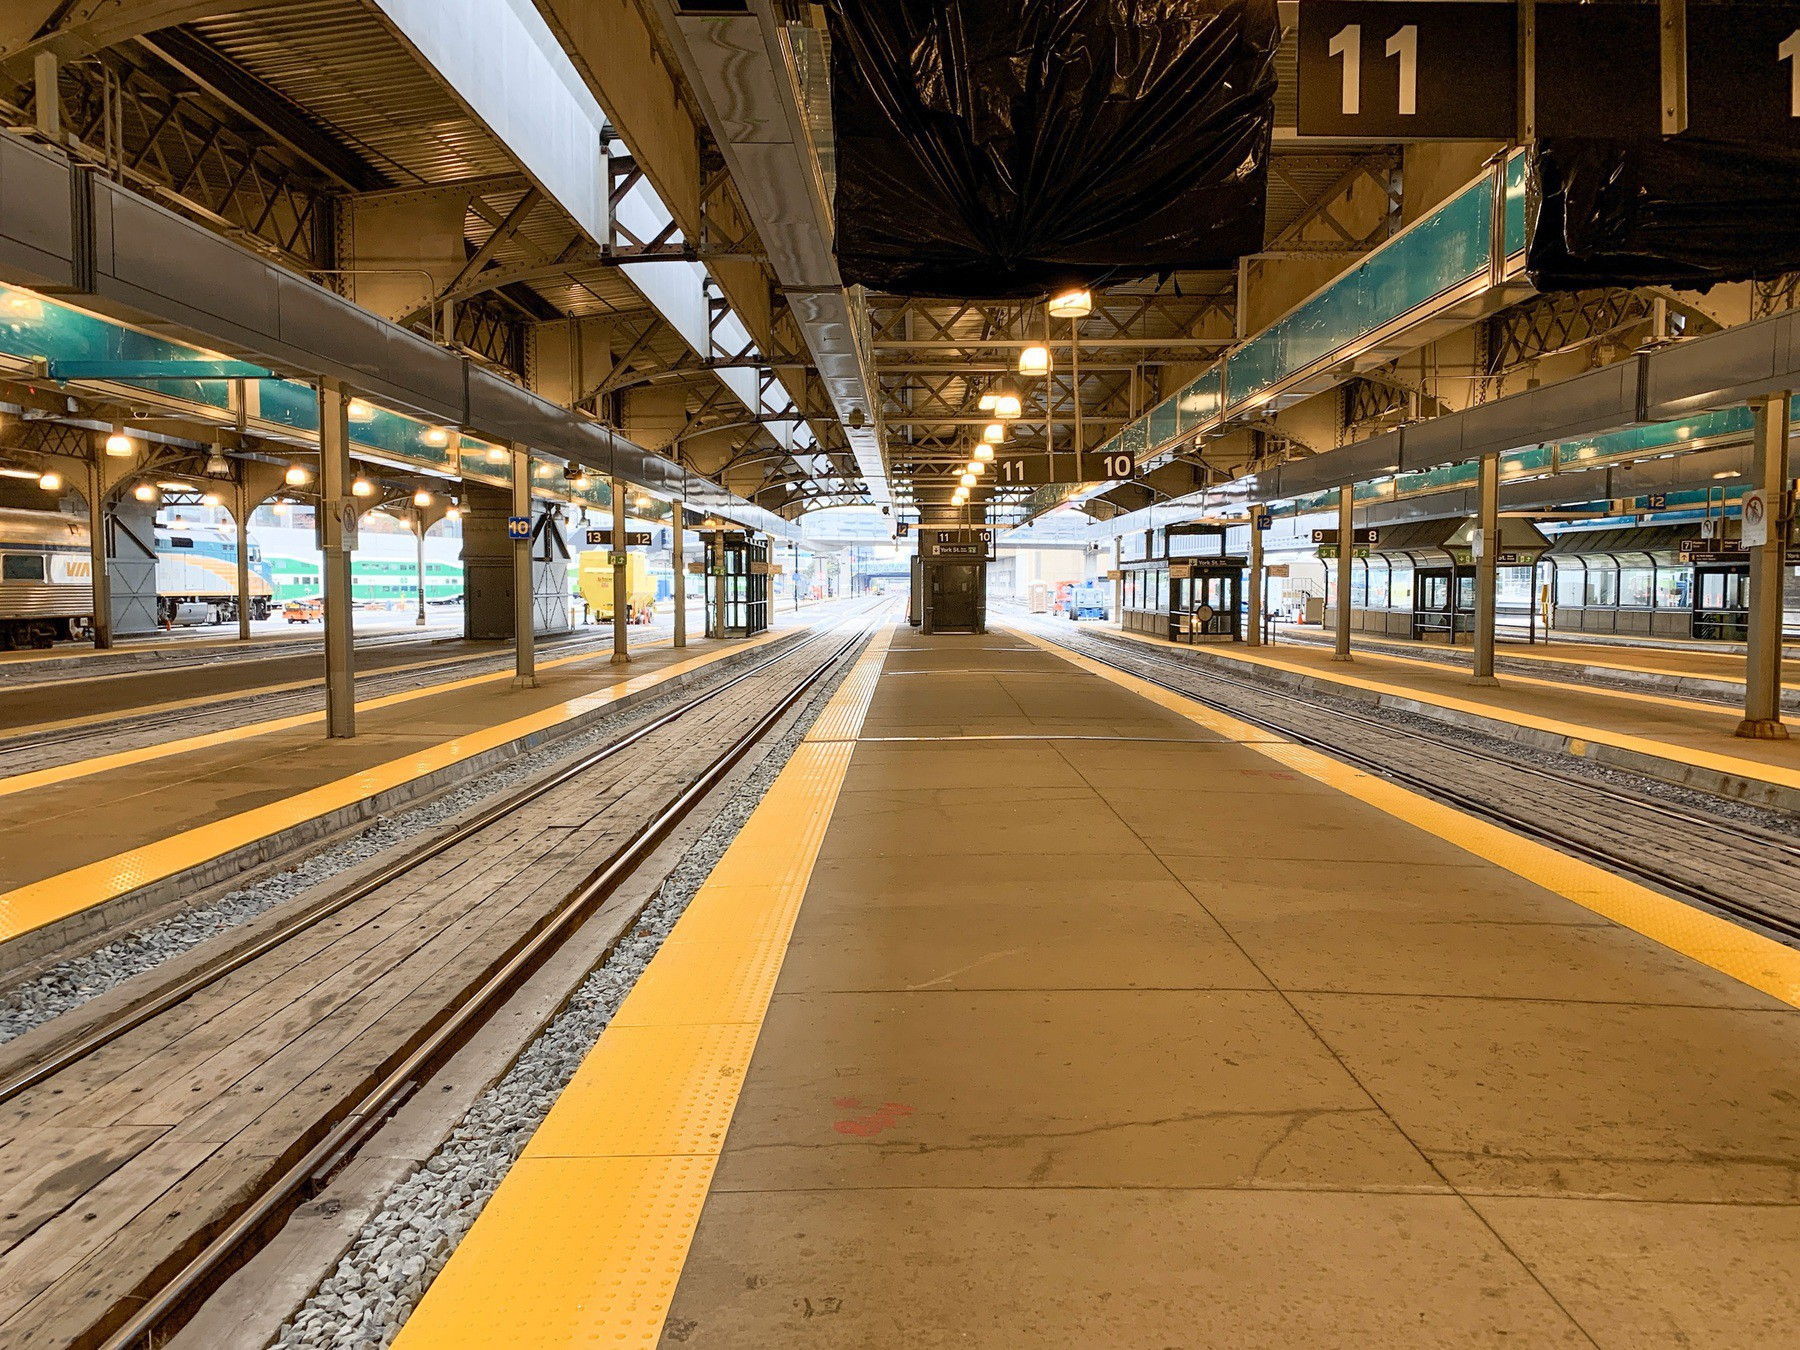 Track 10/11 at Union Station, Toronto, Ontario, Canada.